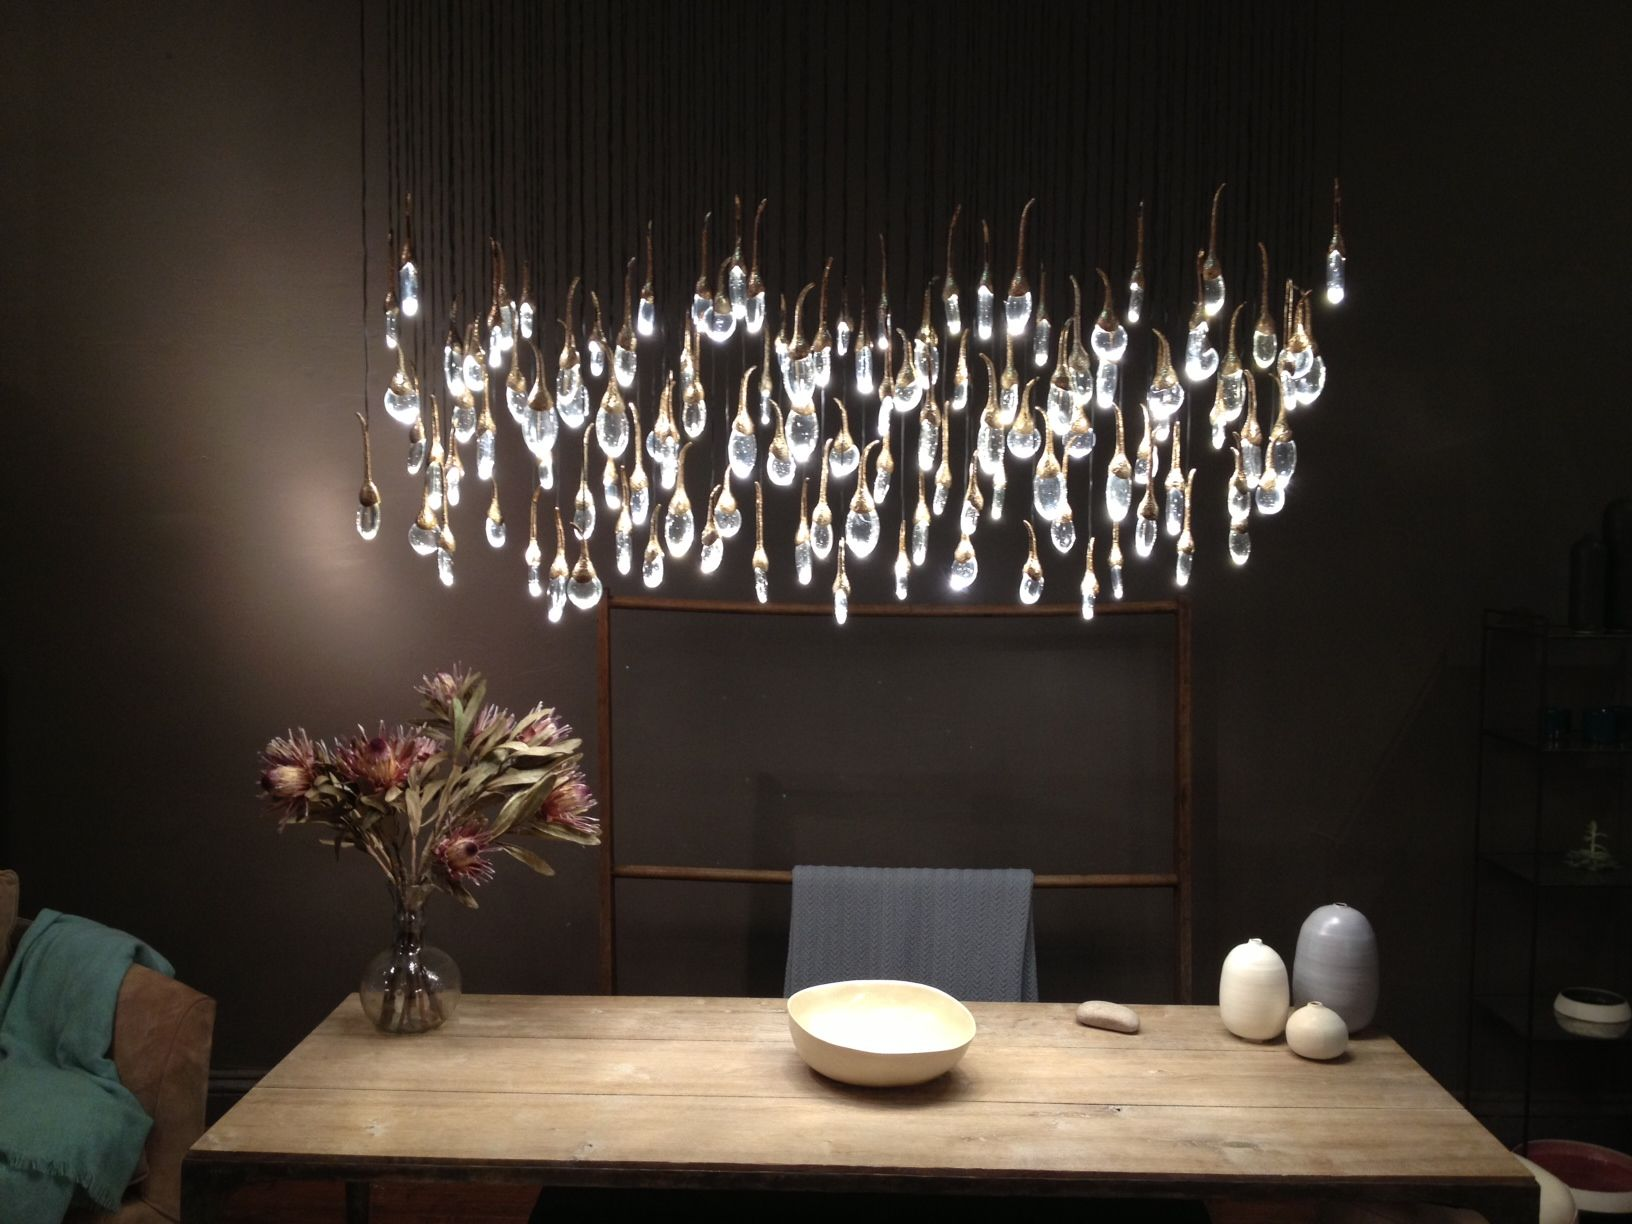 Seed Pod Light Aspen Alps Ochre Lighting Dining